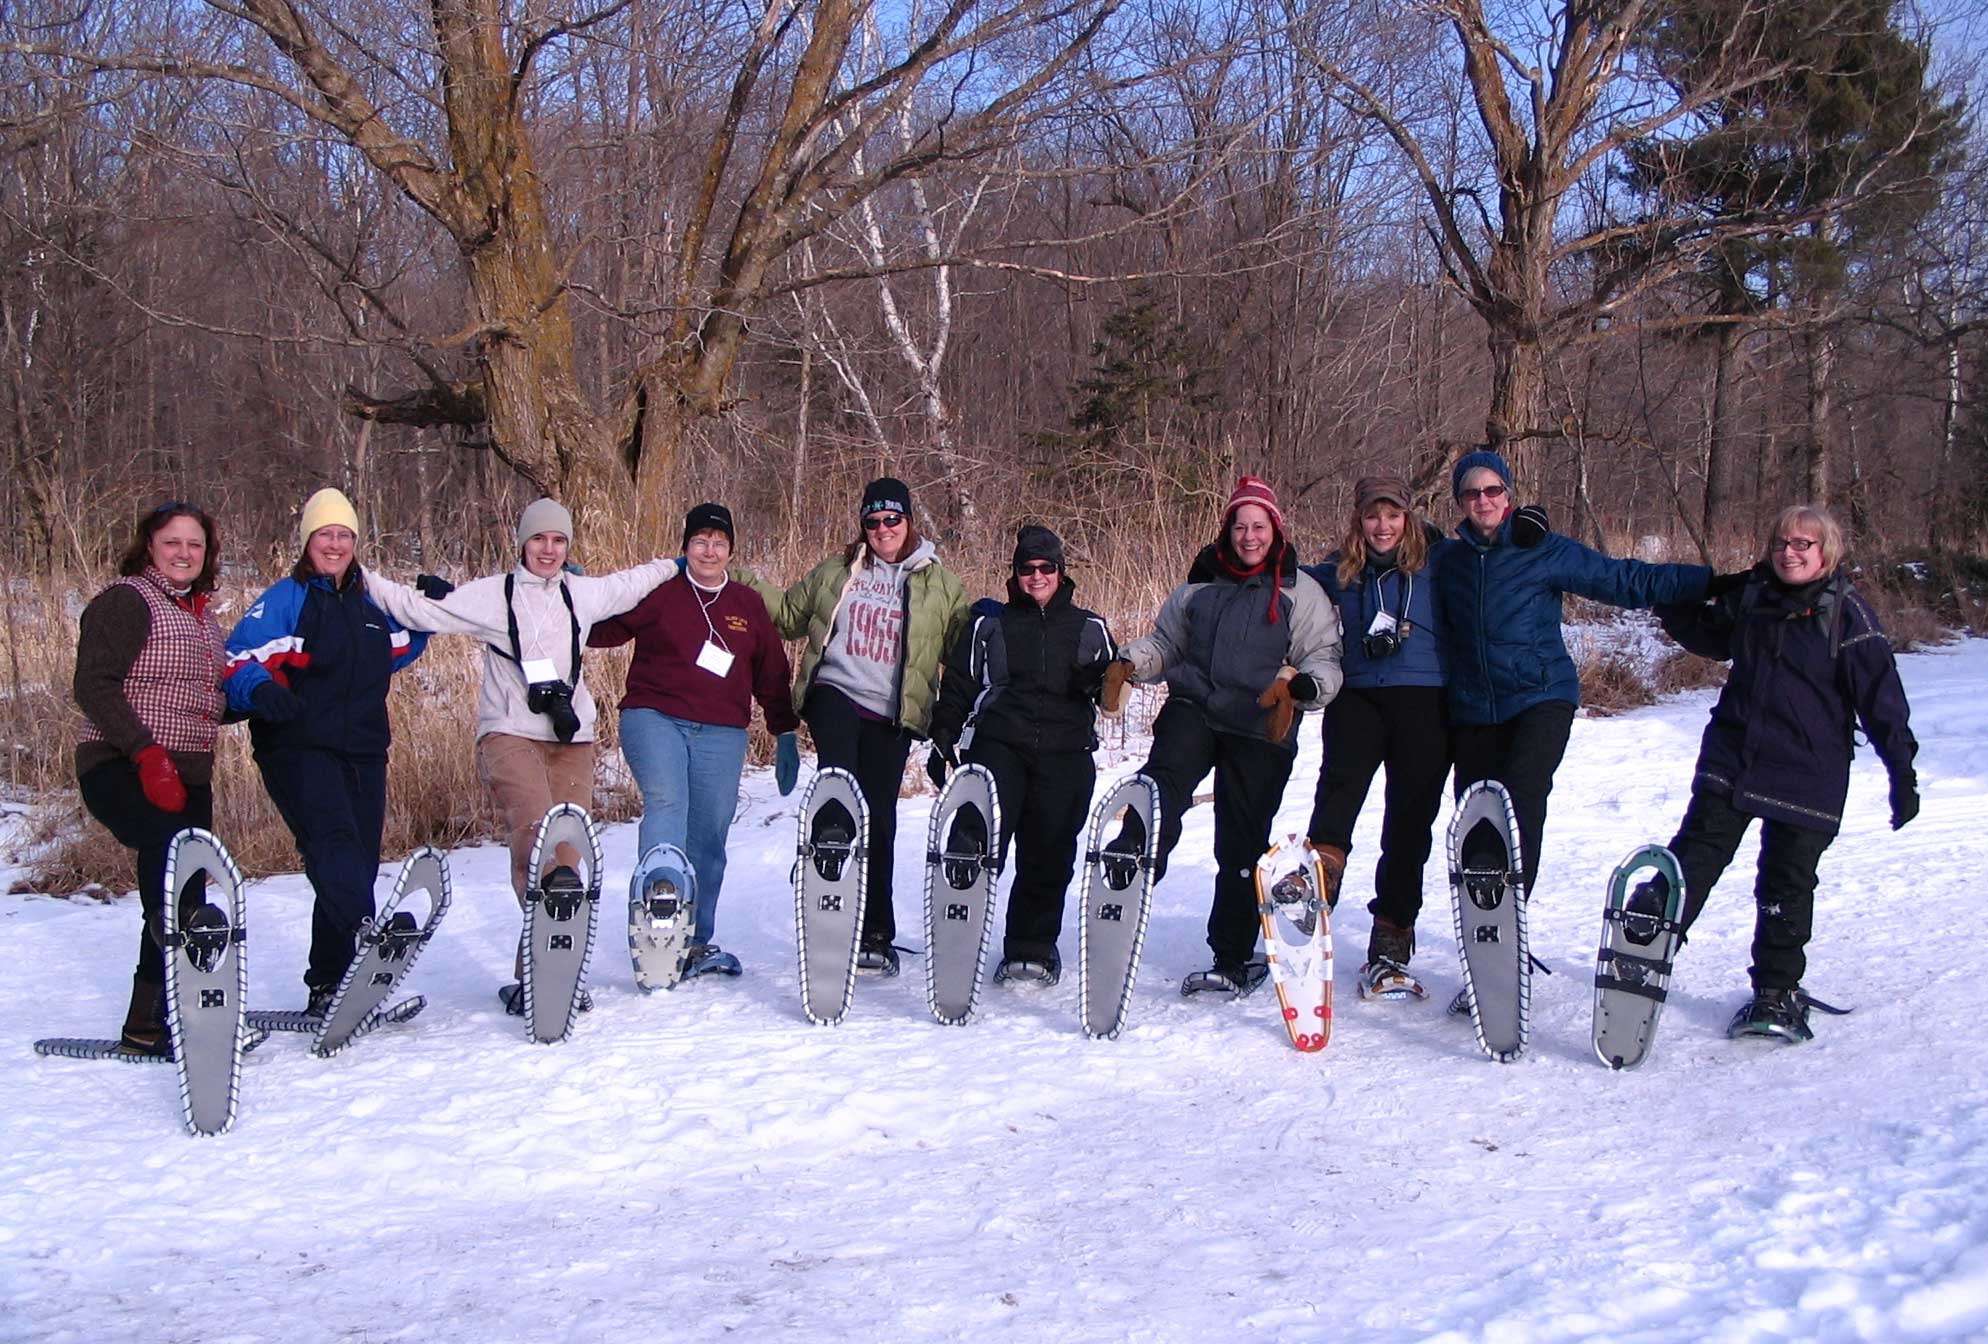 snowshoeing outing